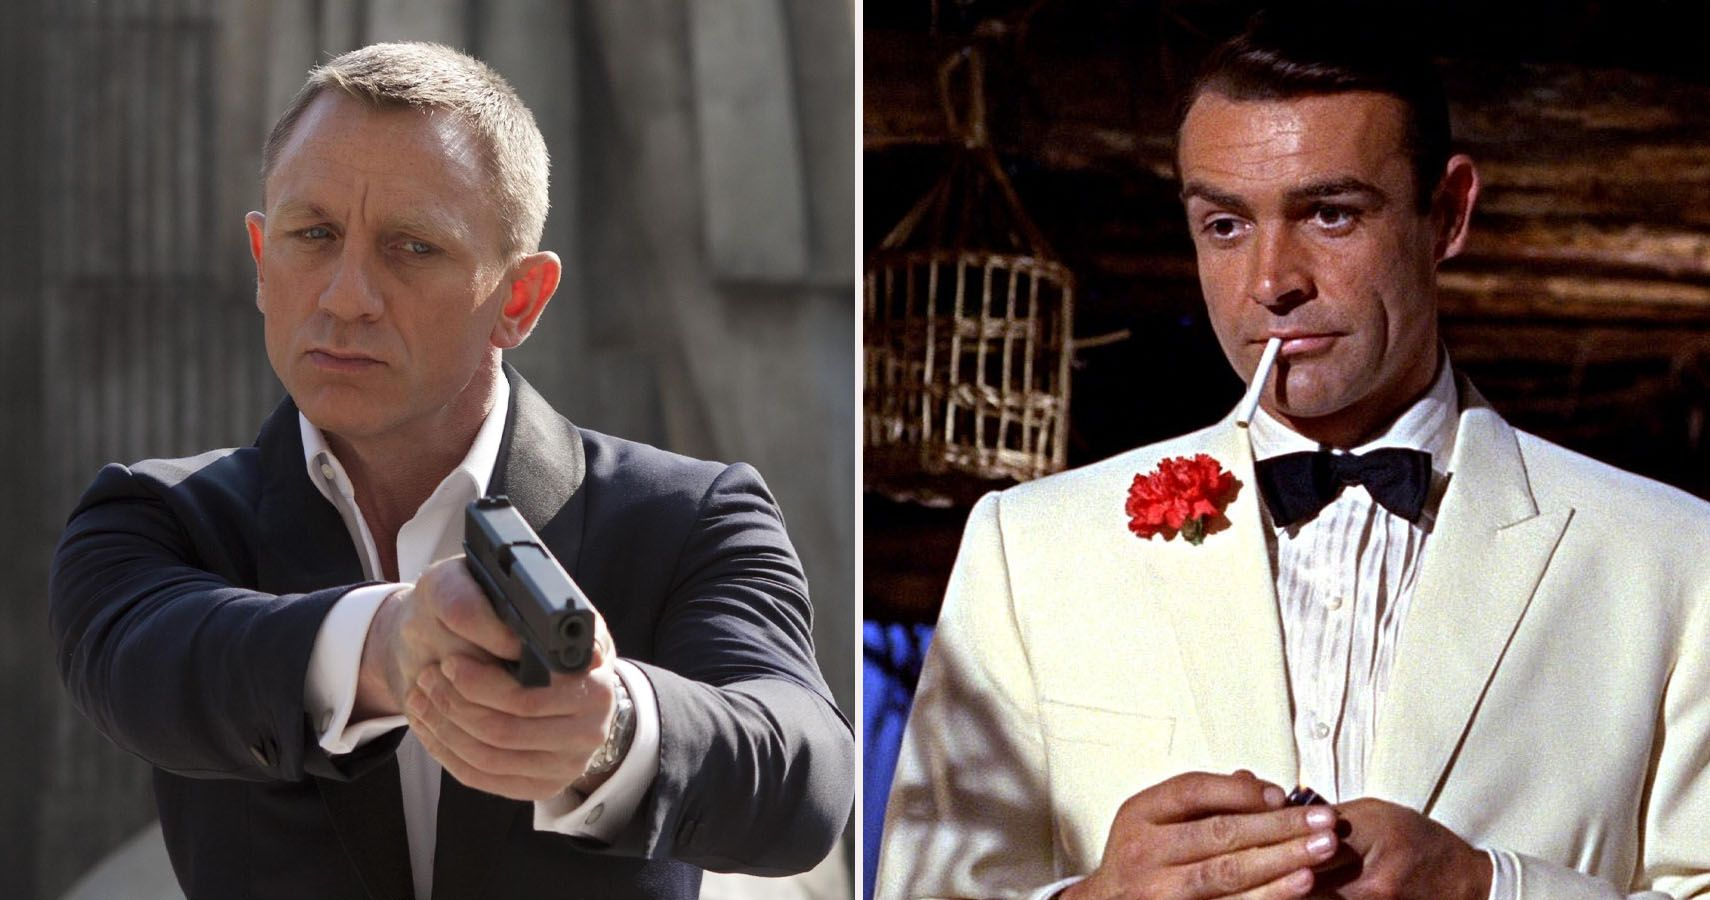 10 Behind The Scenes Facts About James Bond Screenrant